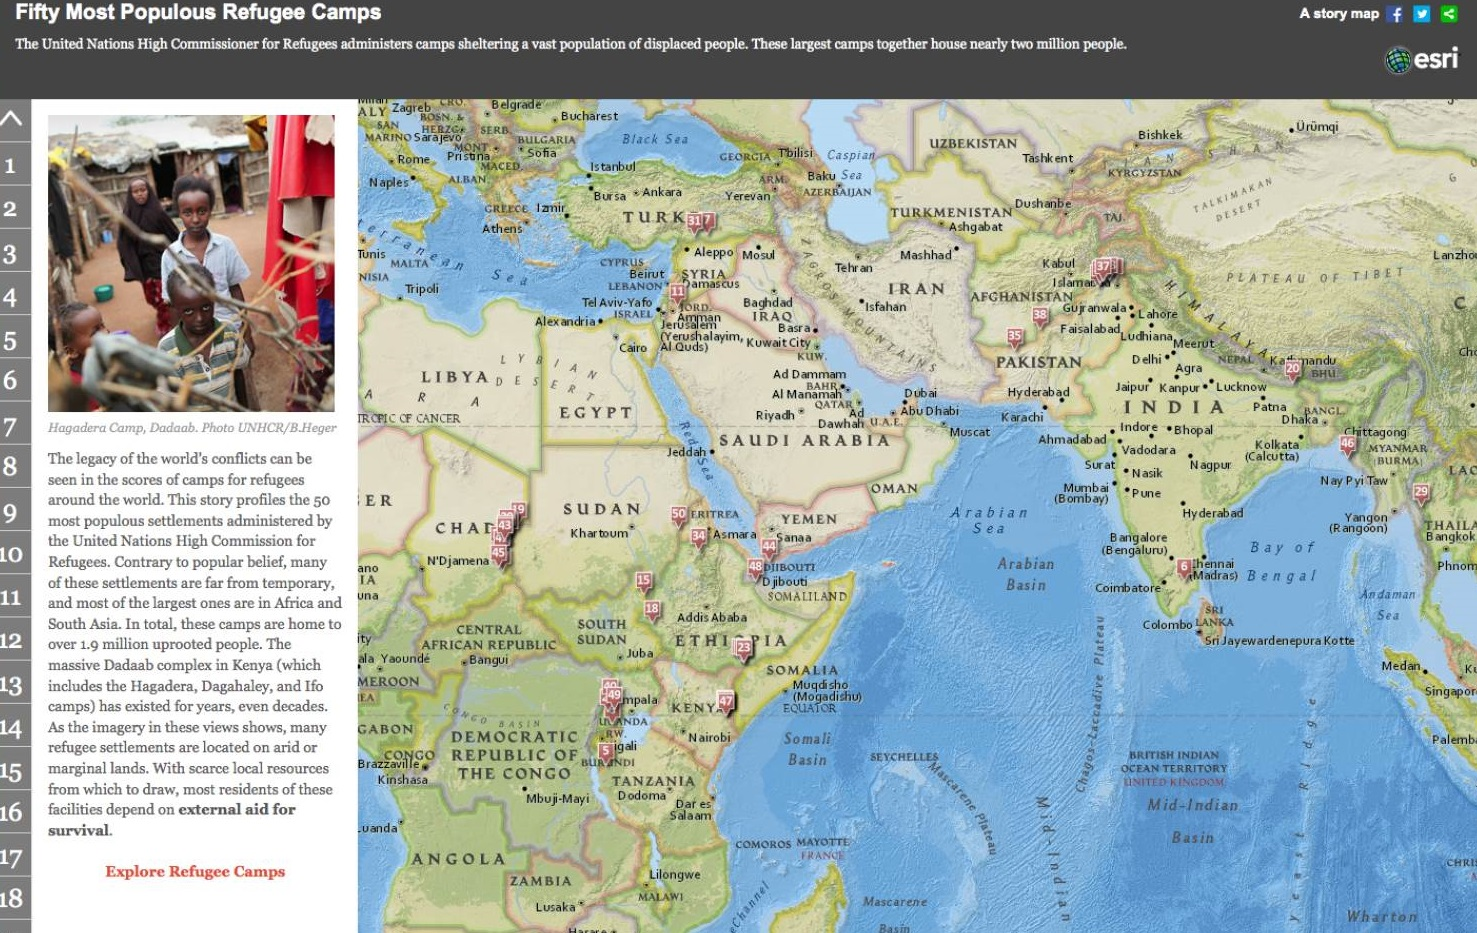 Refugee camps in the world | ESRI